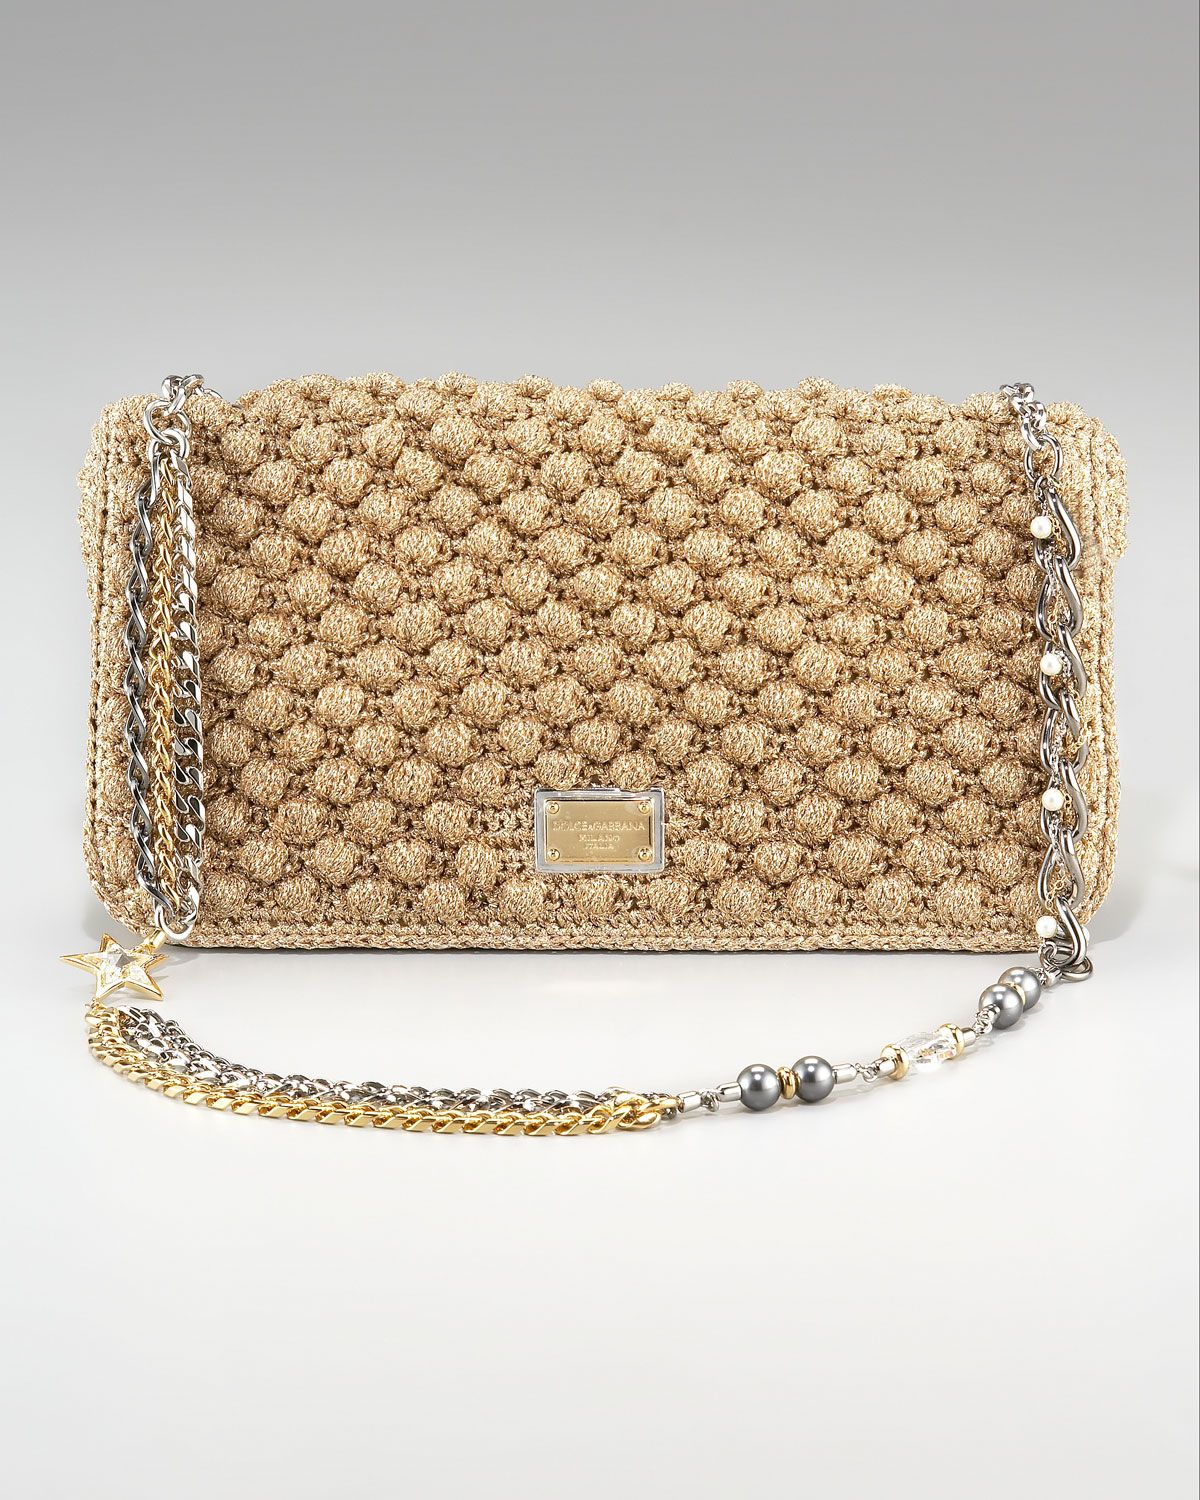 e7a3436ec954 Dolce   Gabbana Miss Charles Crochet Bag in Beige (black)